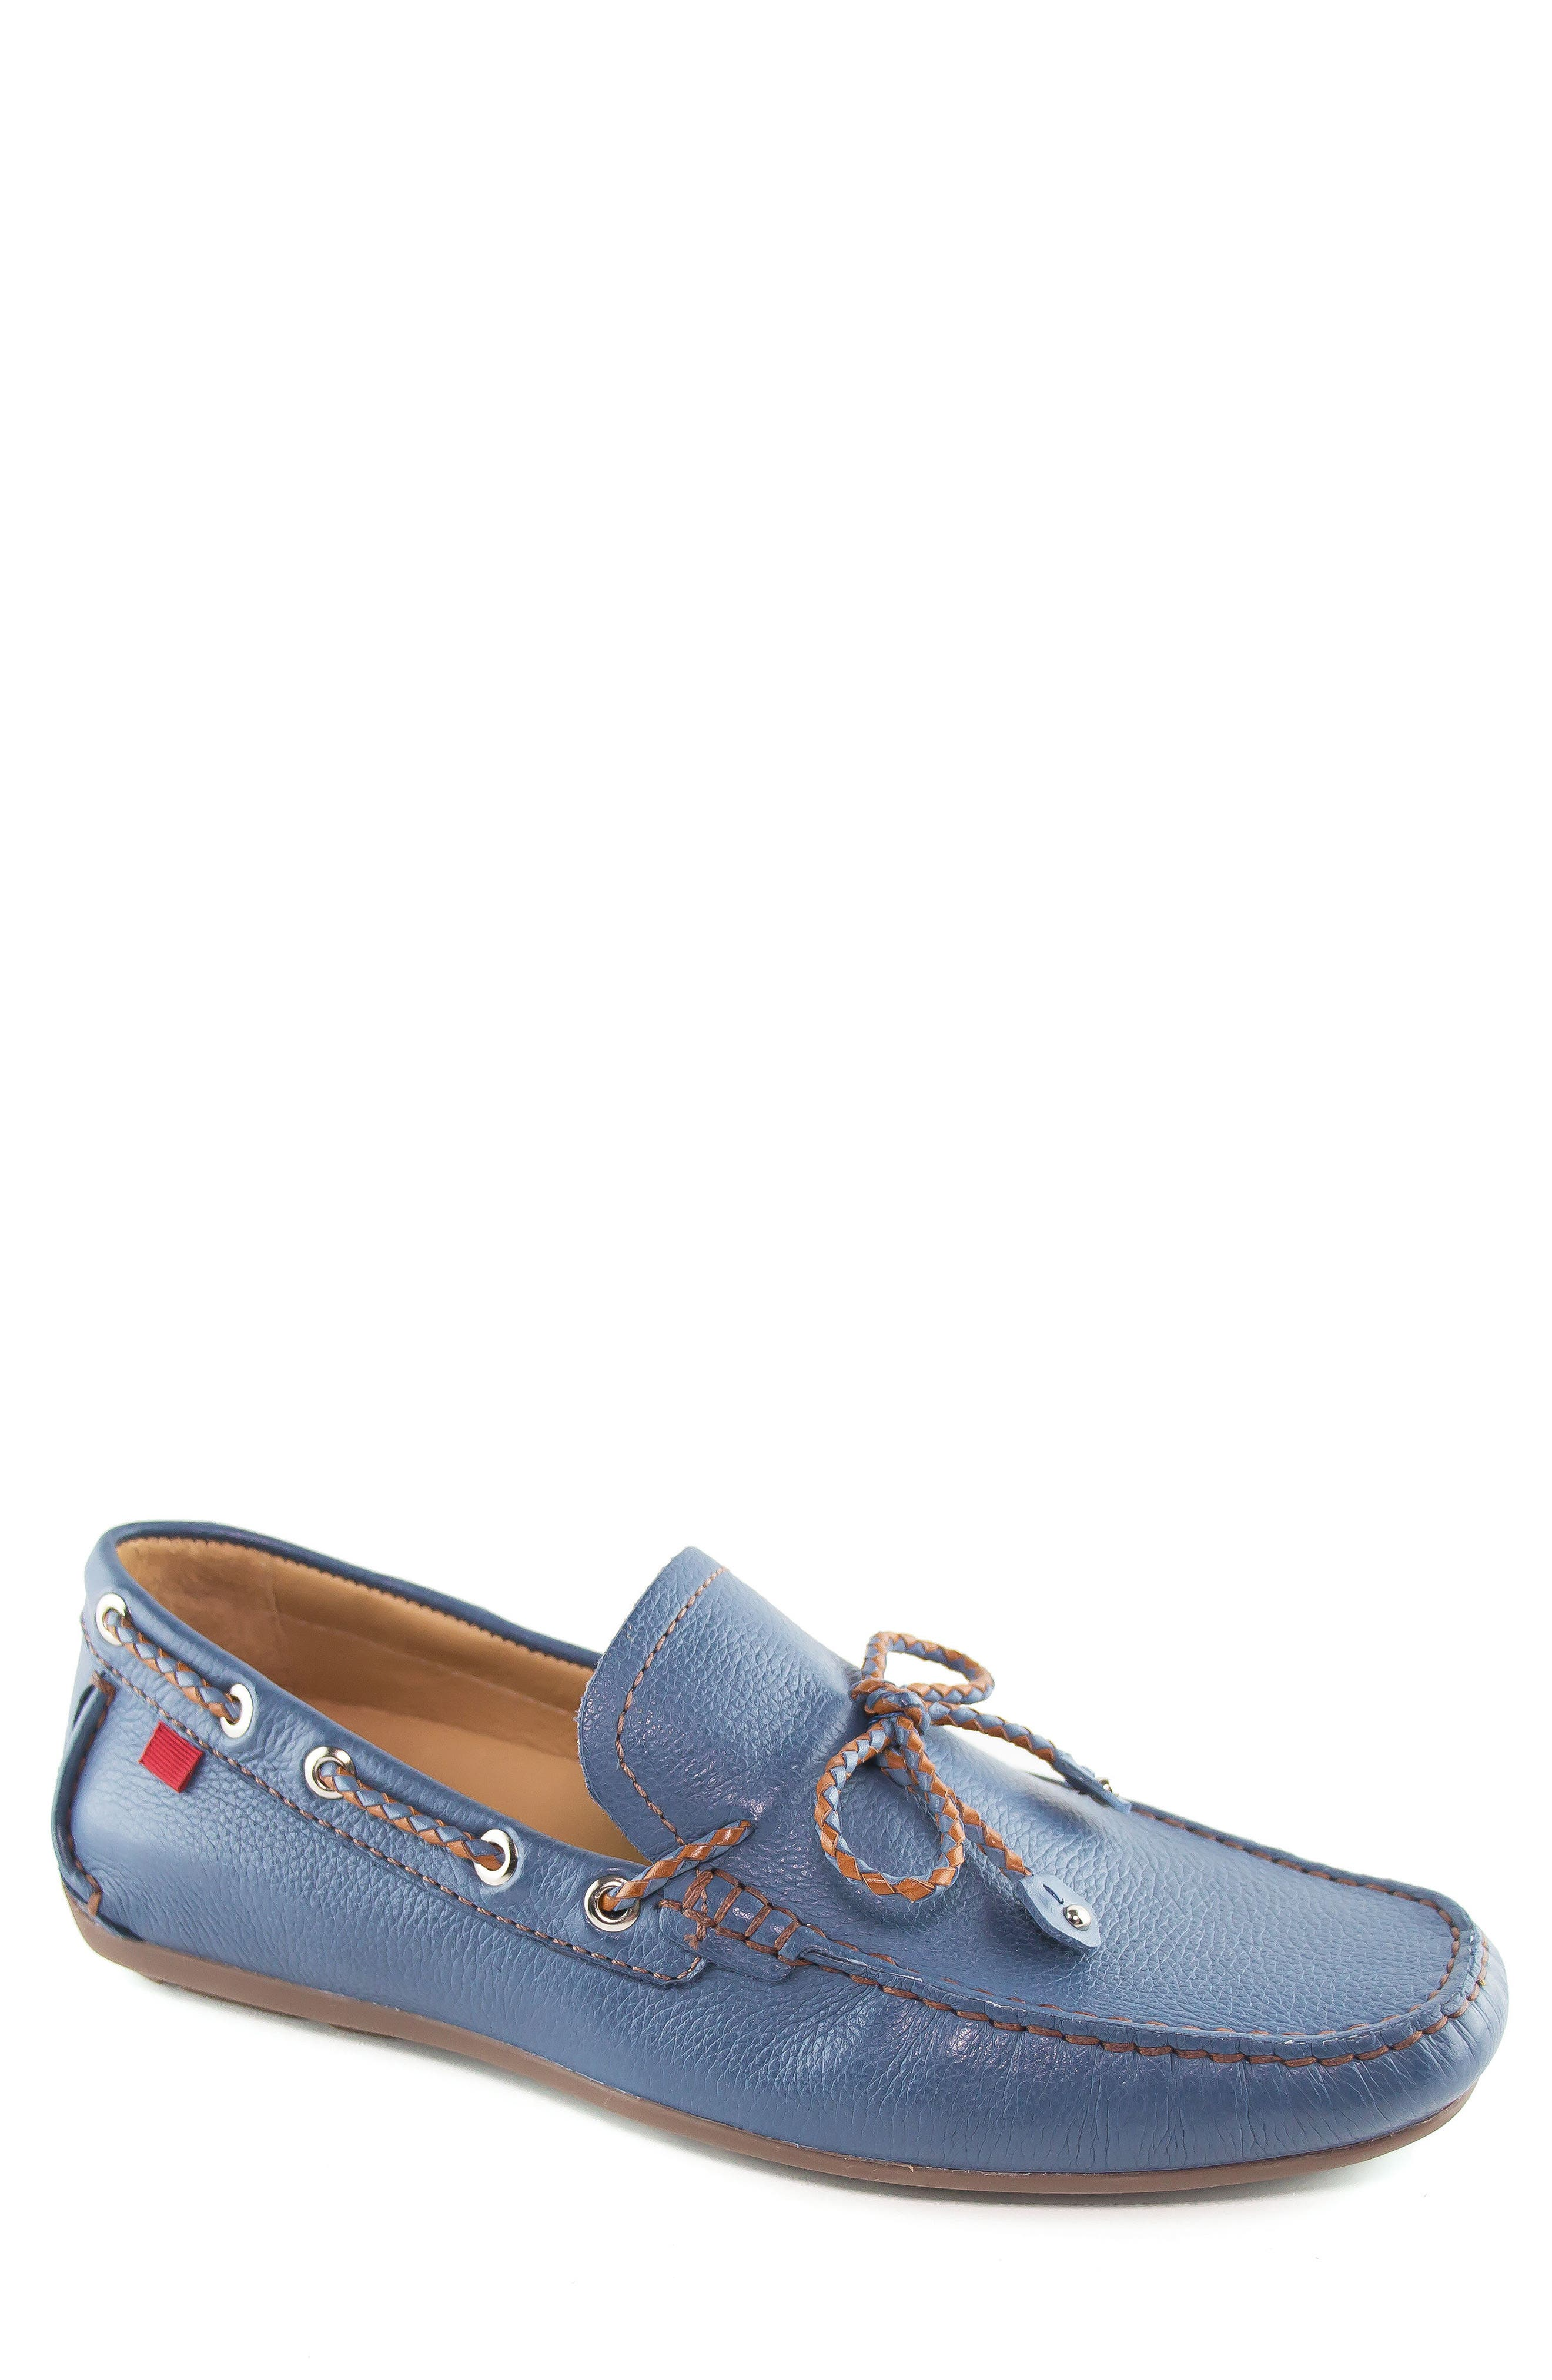 Alternate Image 1 Selected - Marc Joseph New York 'Cypress' Moccasin (Men)